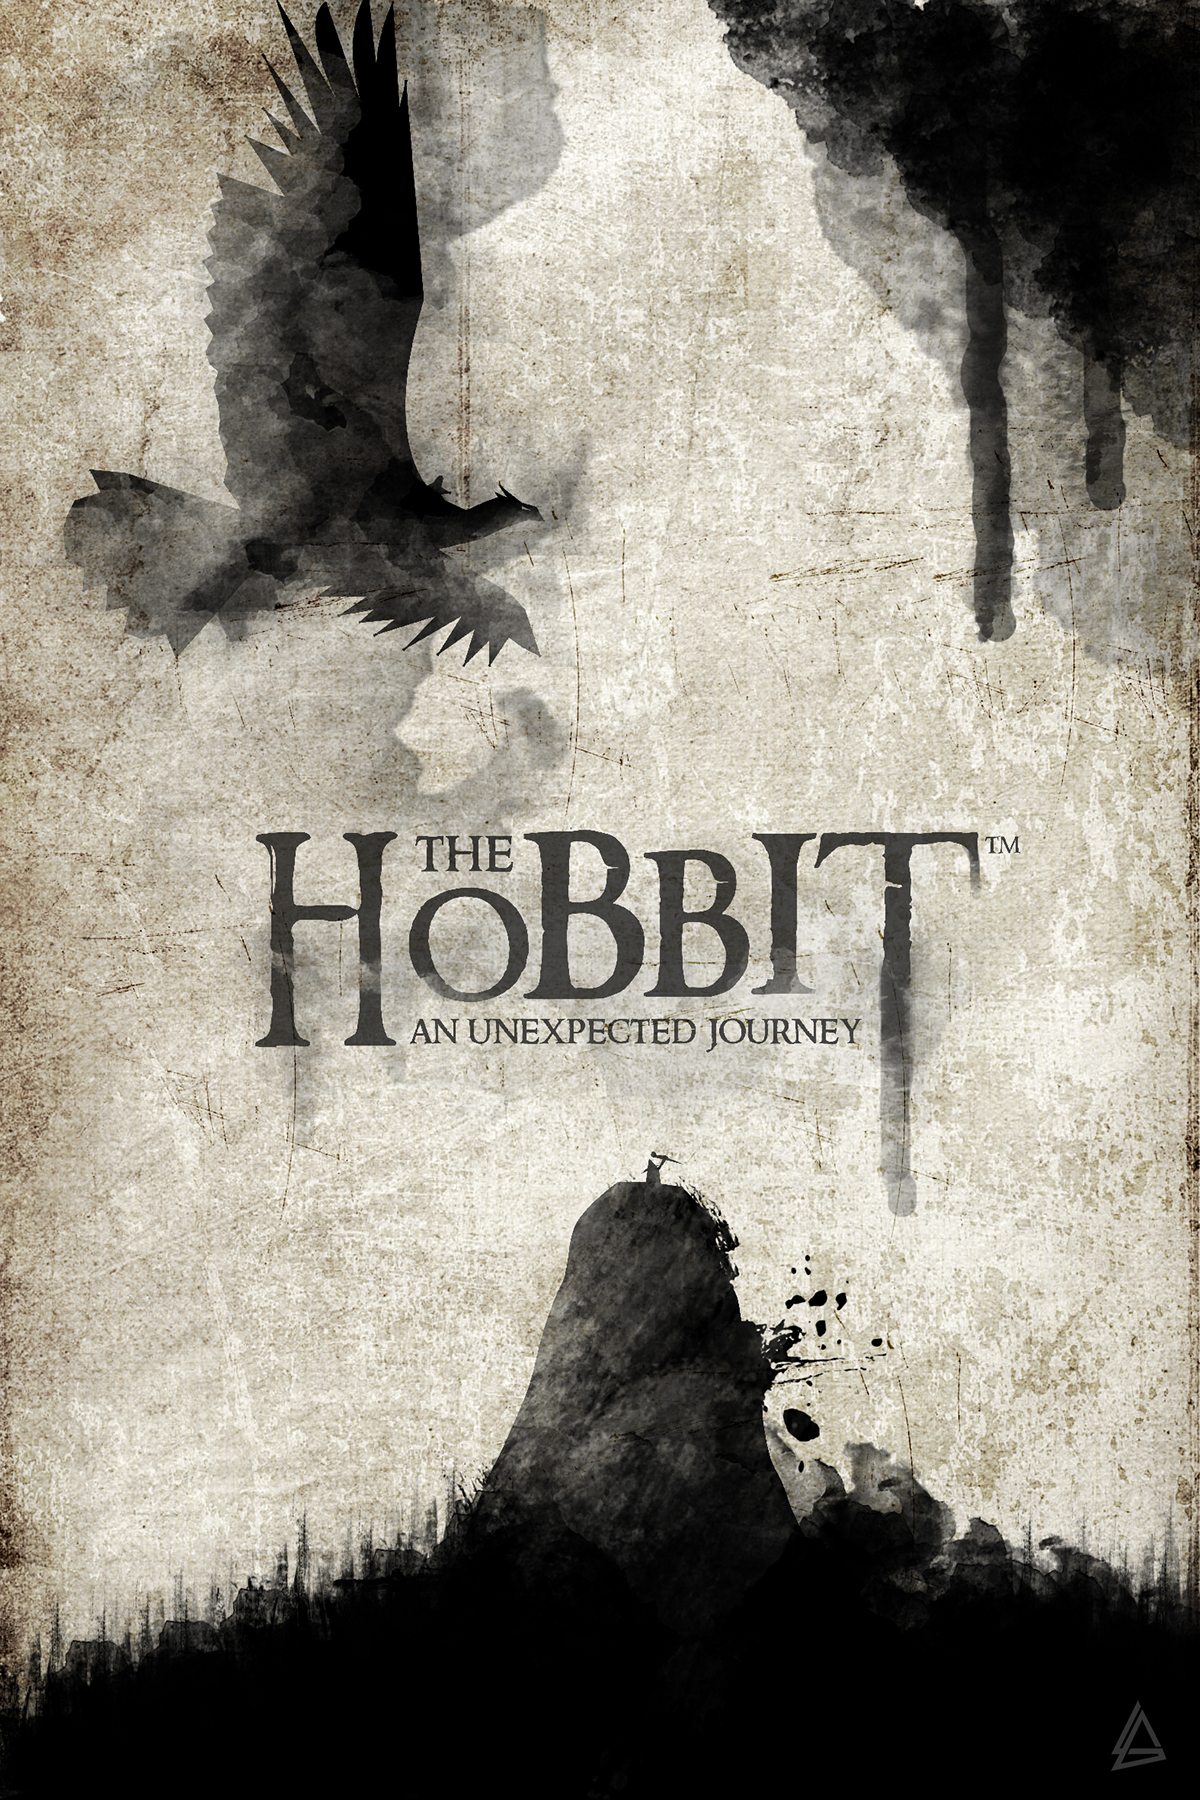 Book Cover Watercolor Uk : The hobbit watercolor book cover on behance